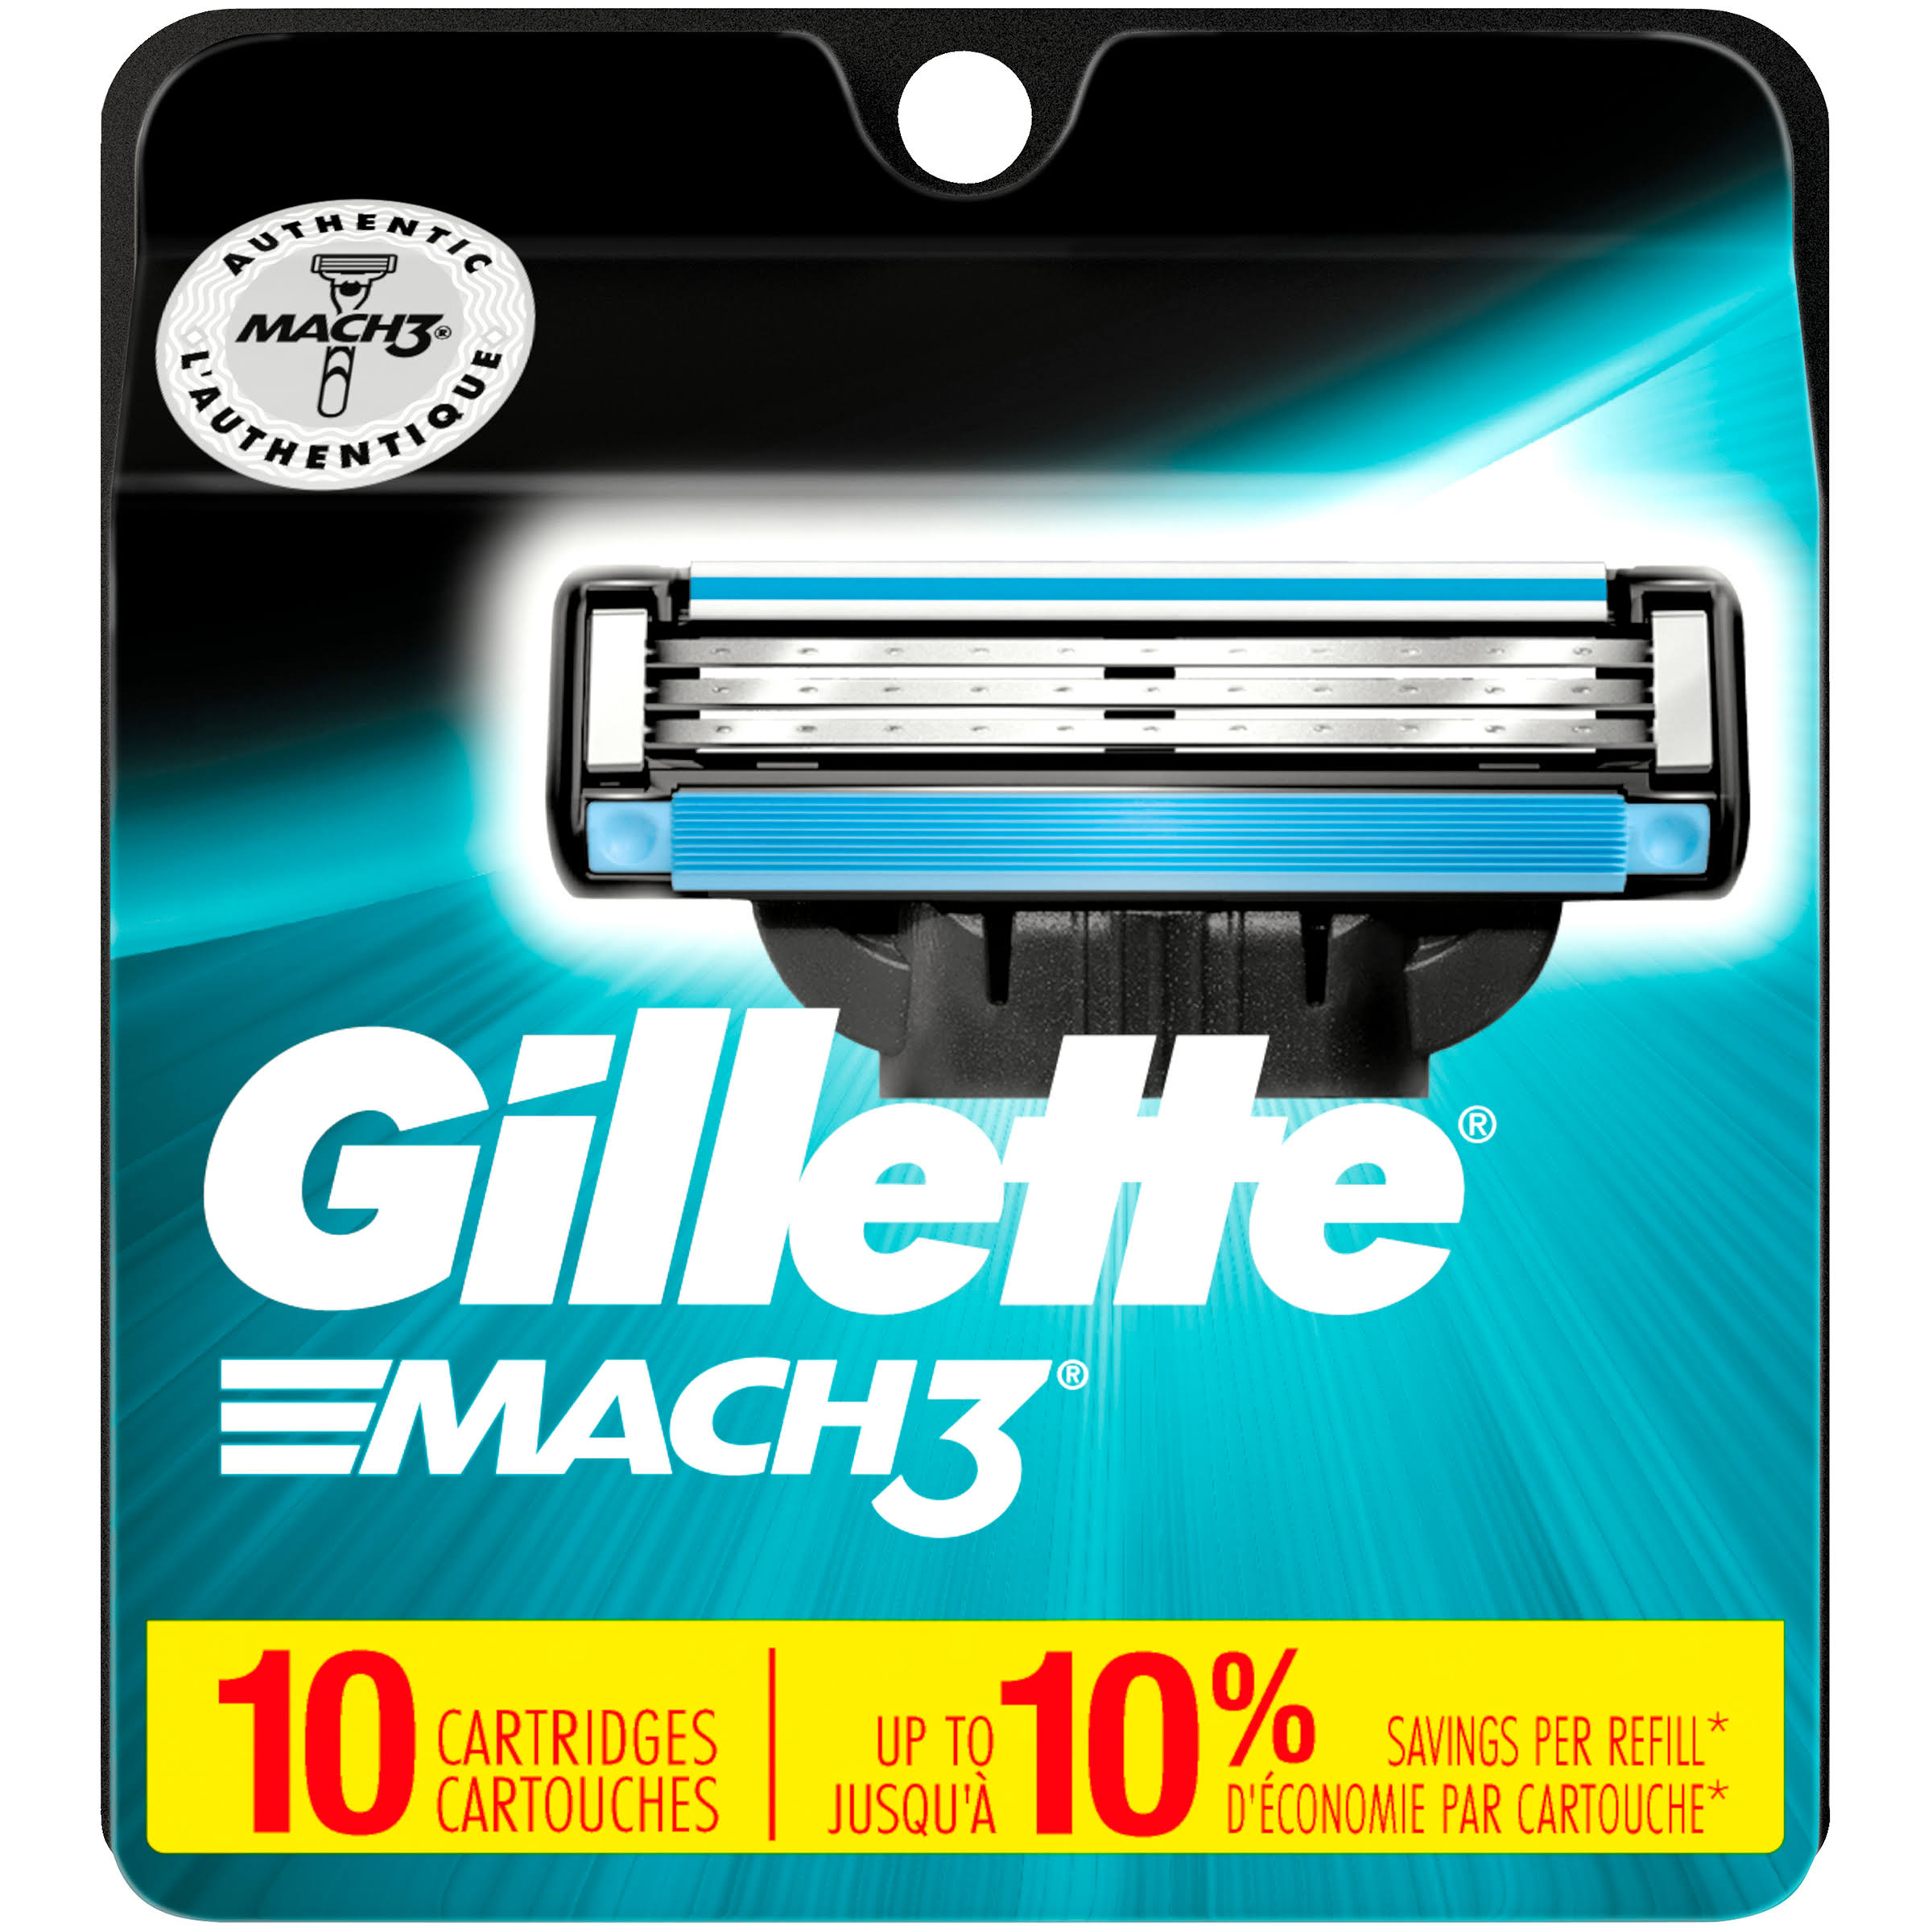 Gillette Mach3 Cartridges - 10 Pack